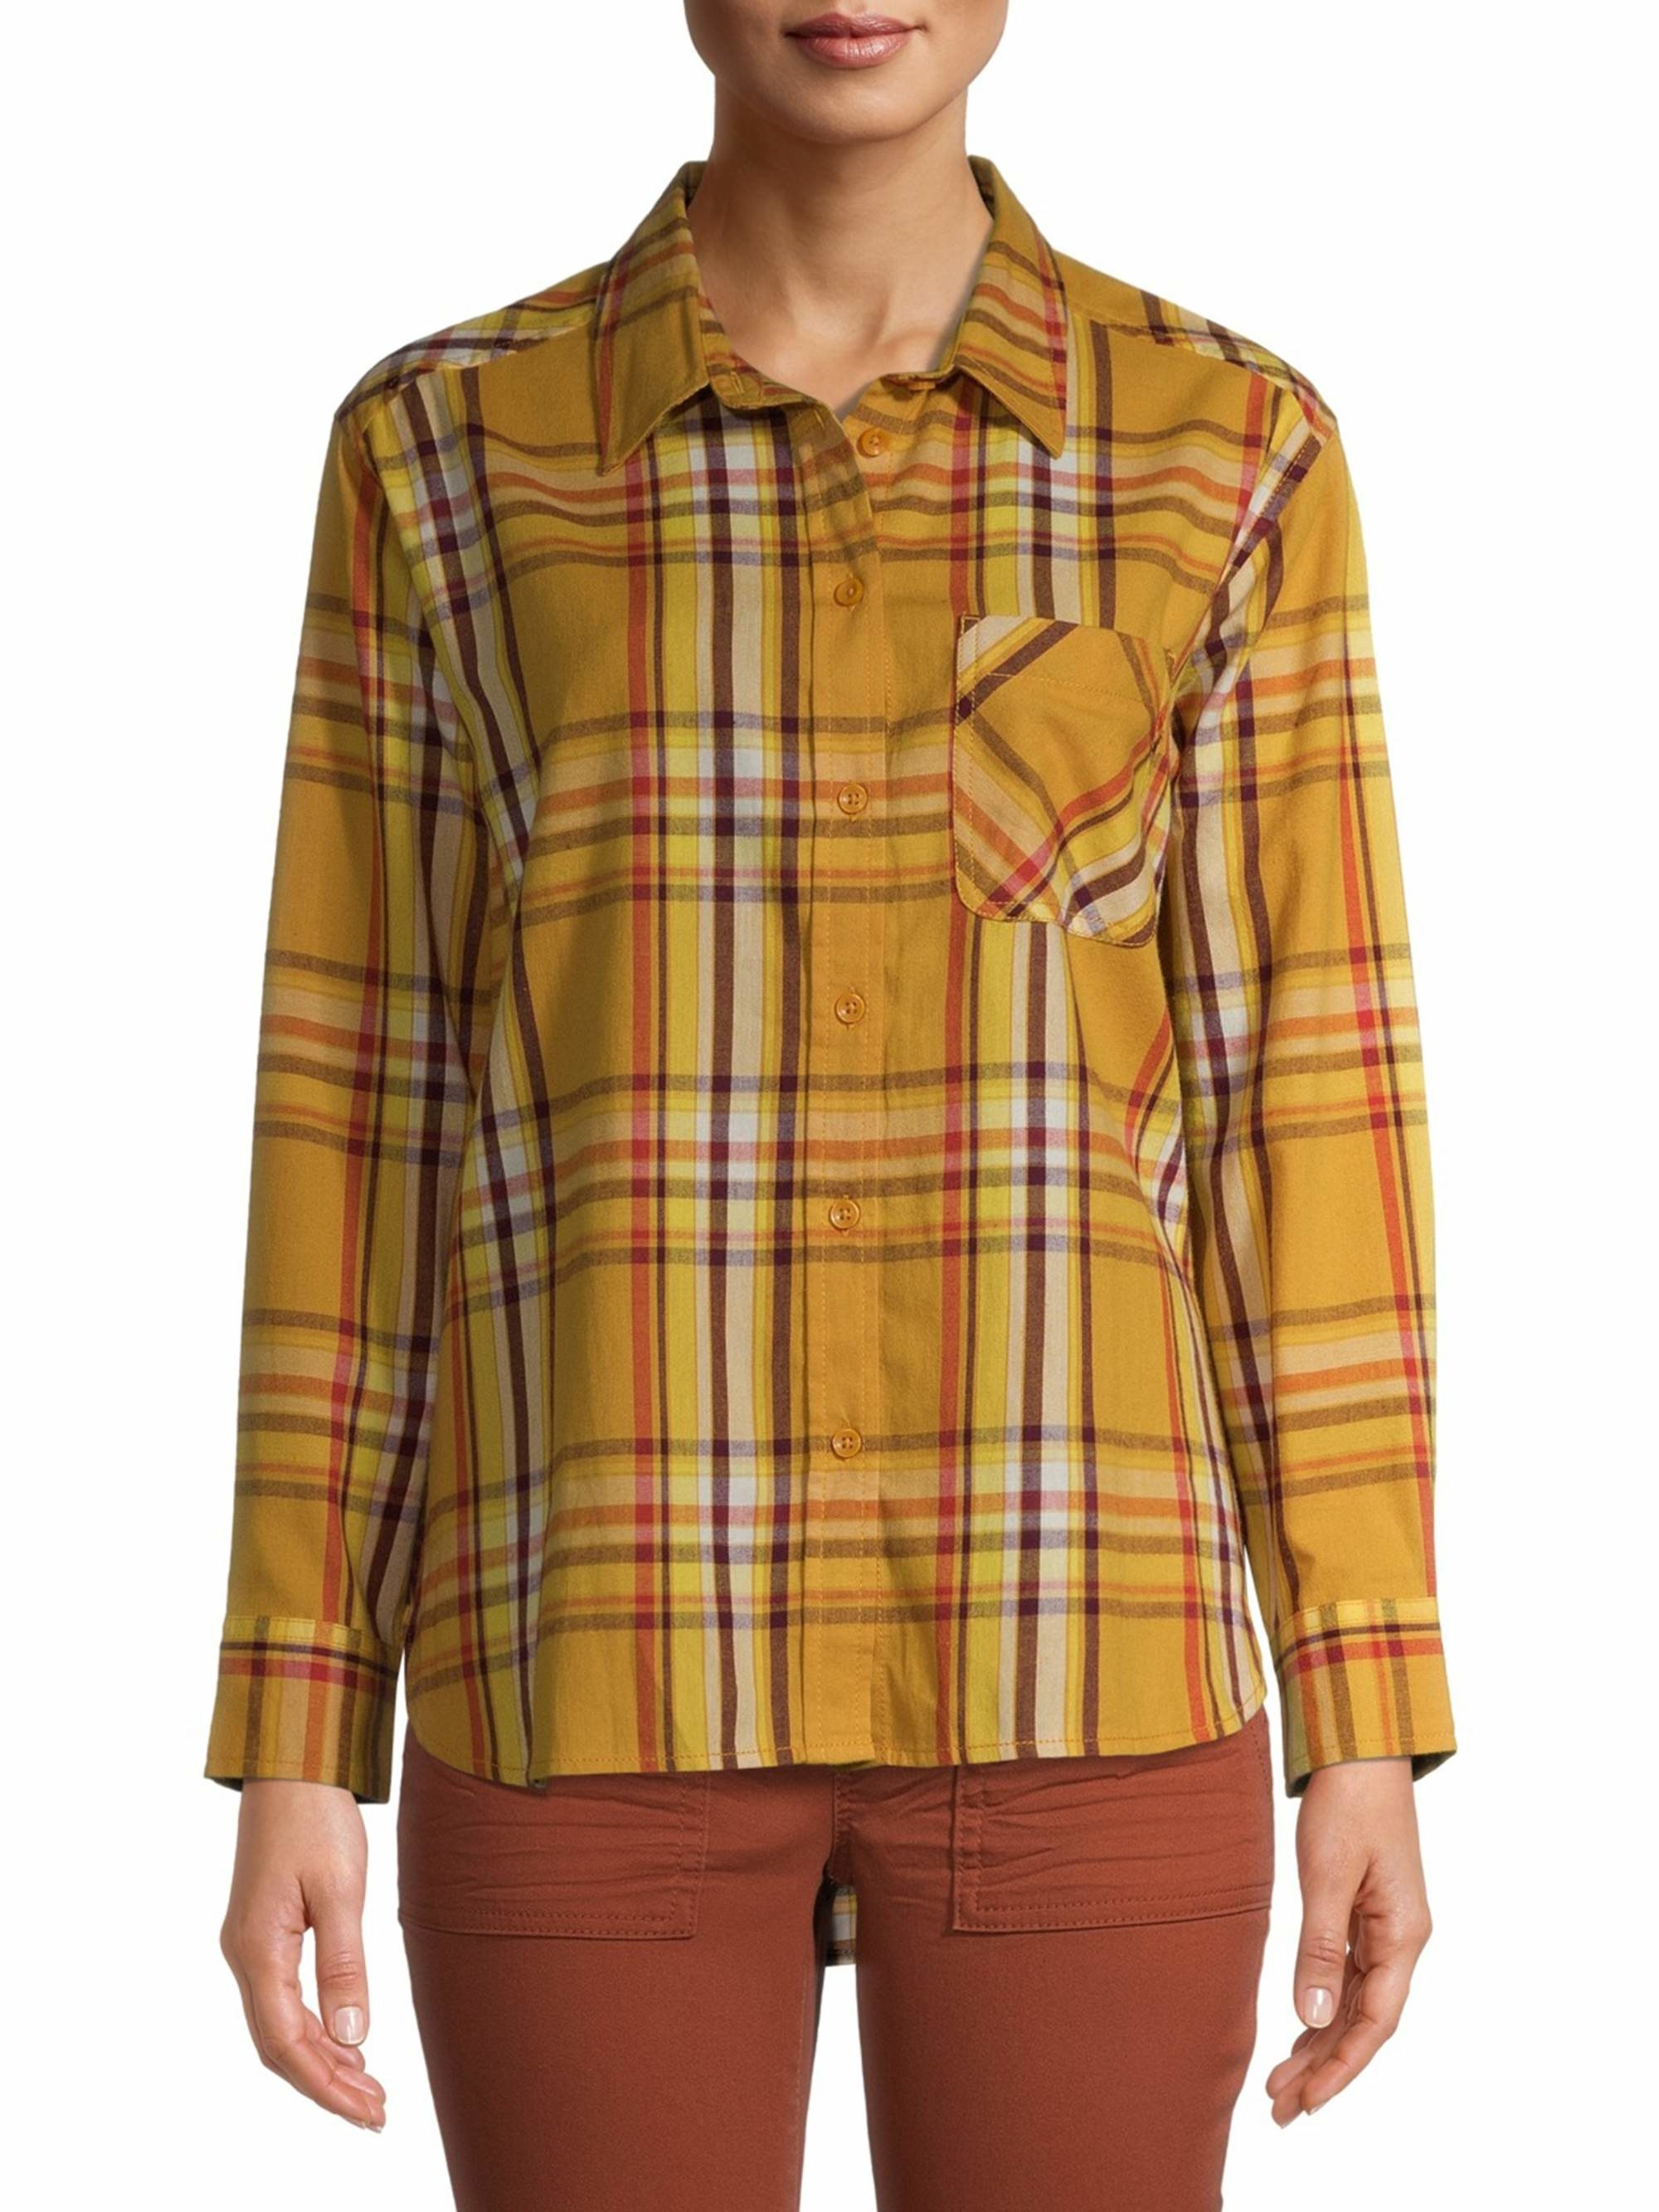 Model wearing yellow plaid top